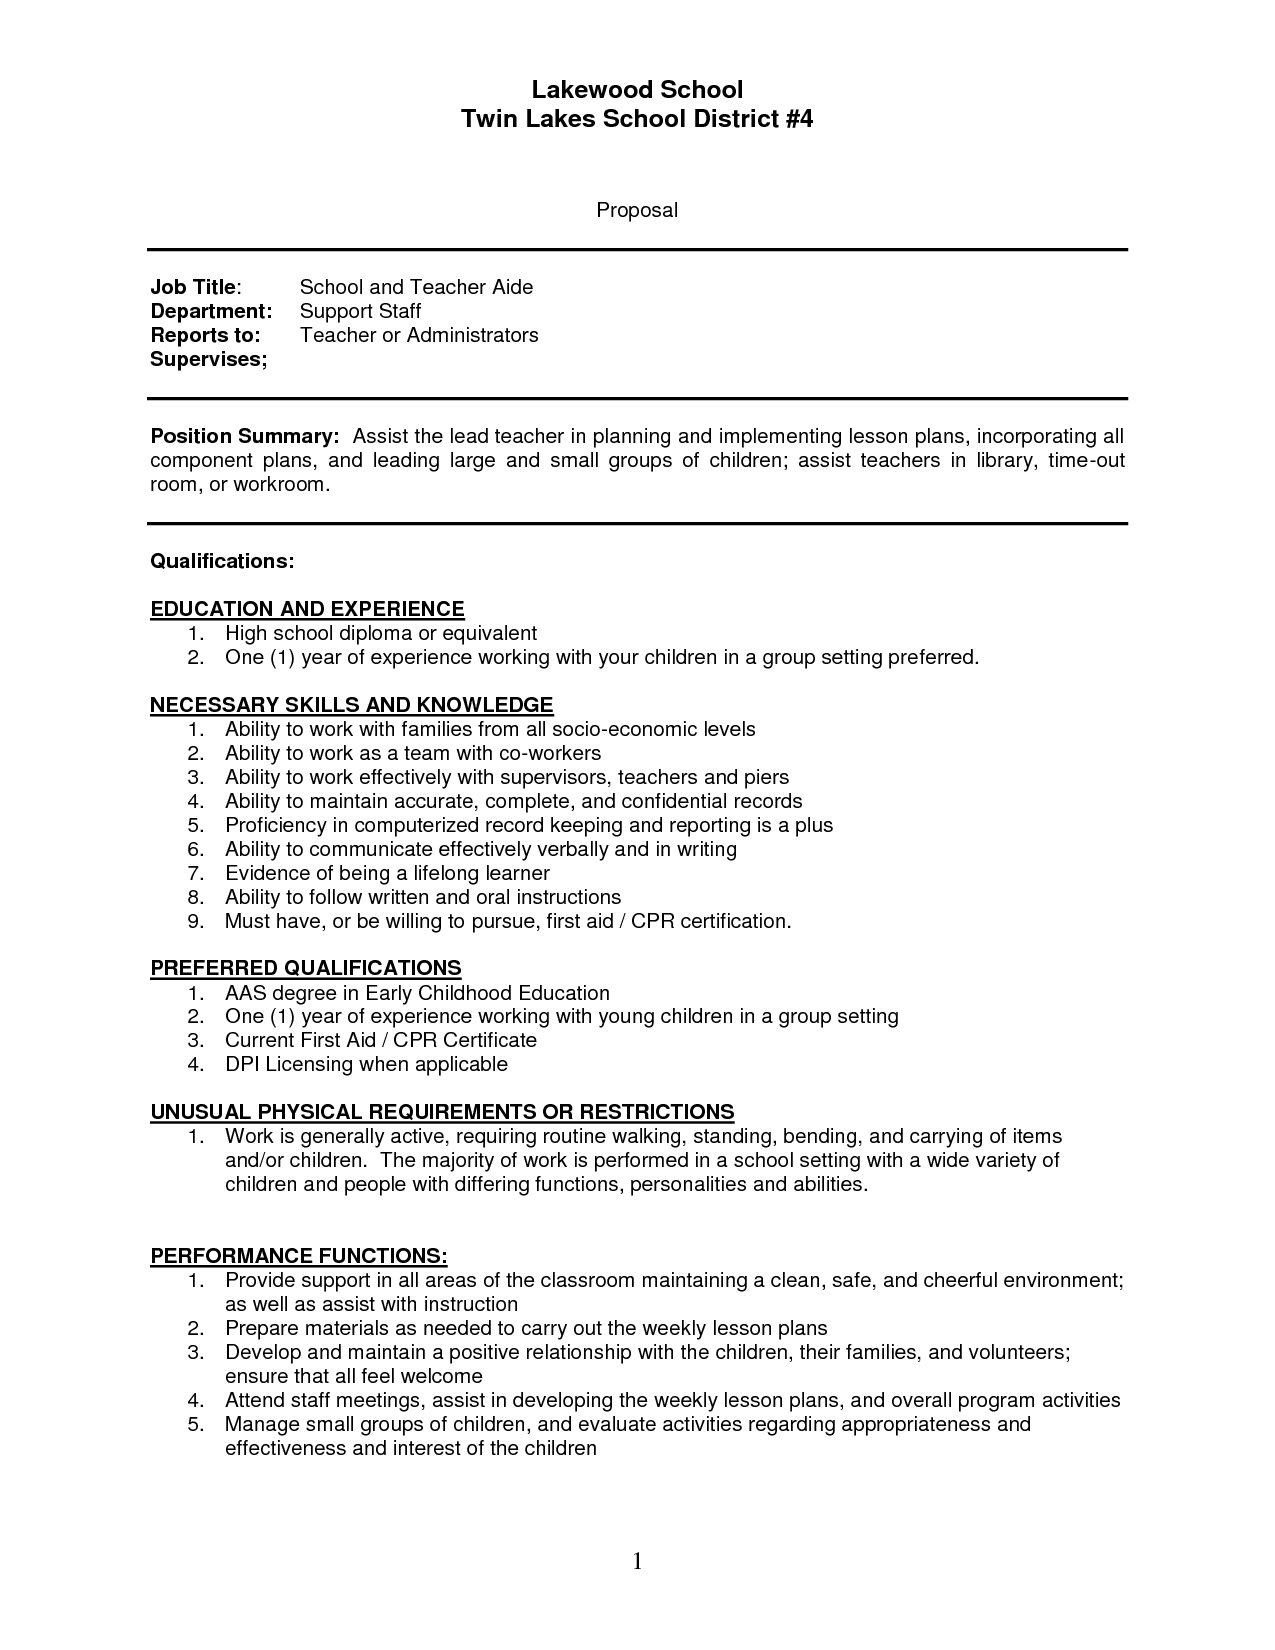 Awesome Teacher Aid Resume Regarding Teacher Assistant Resume